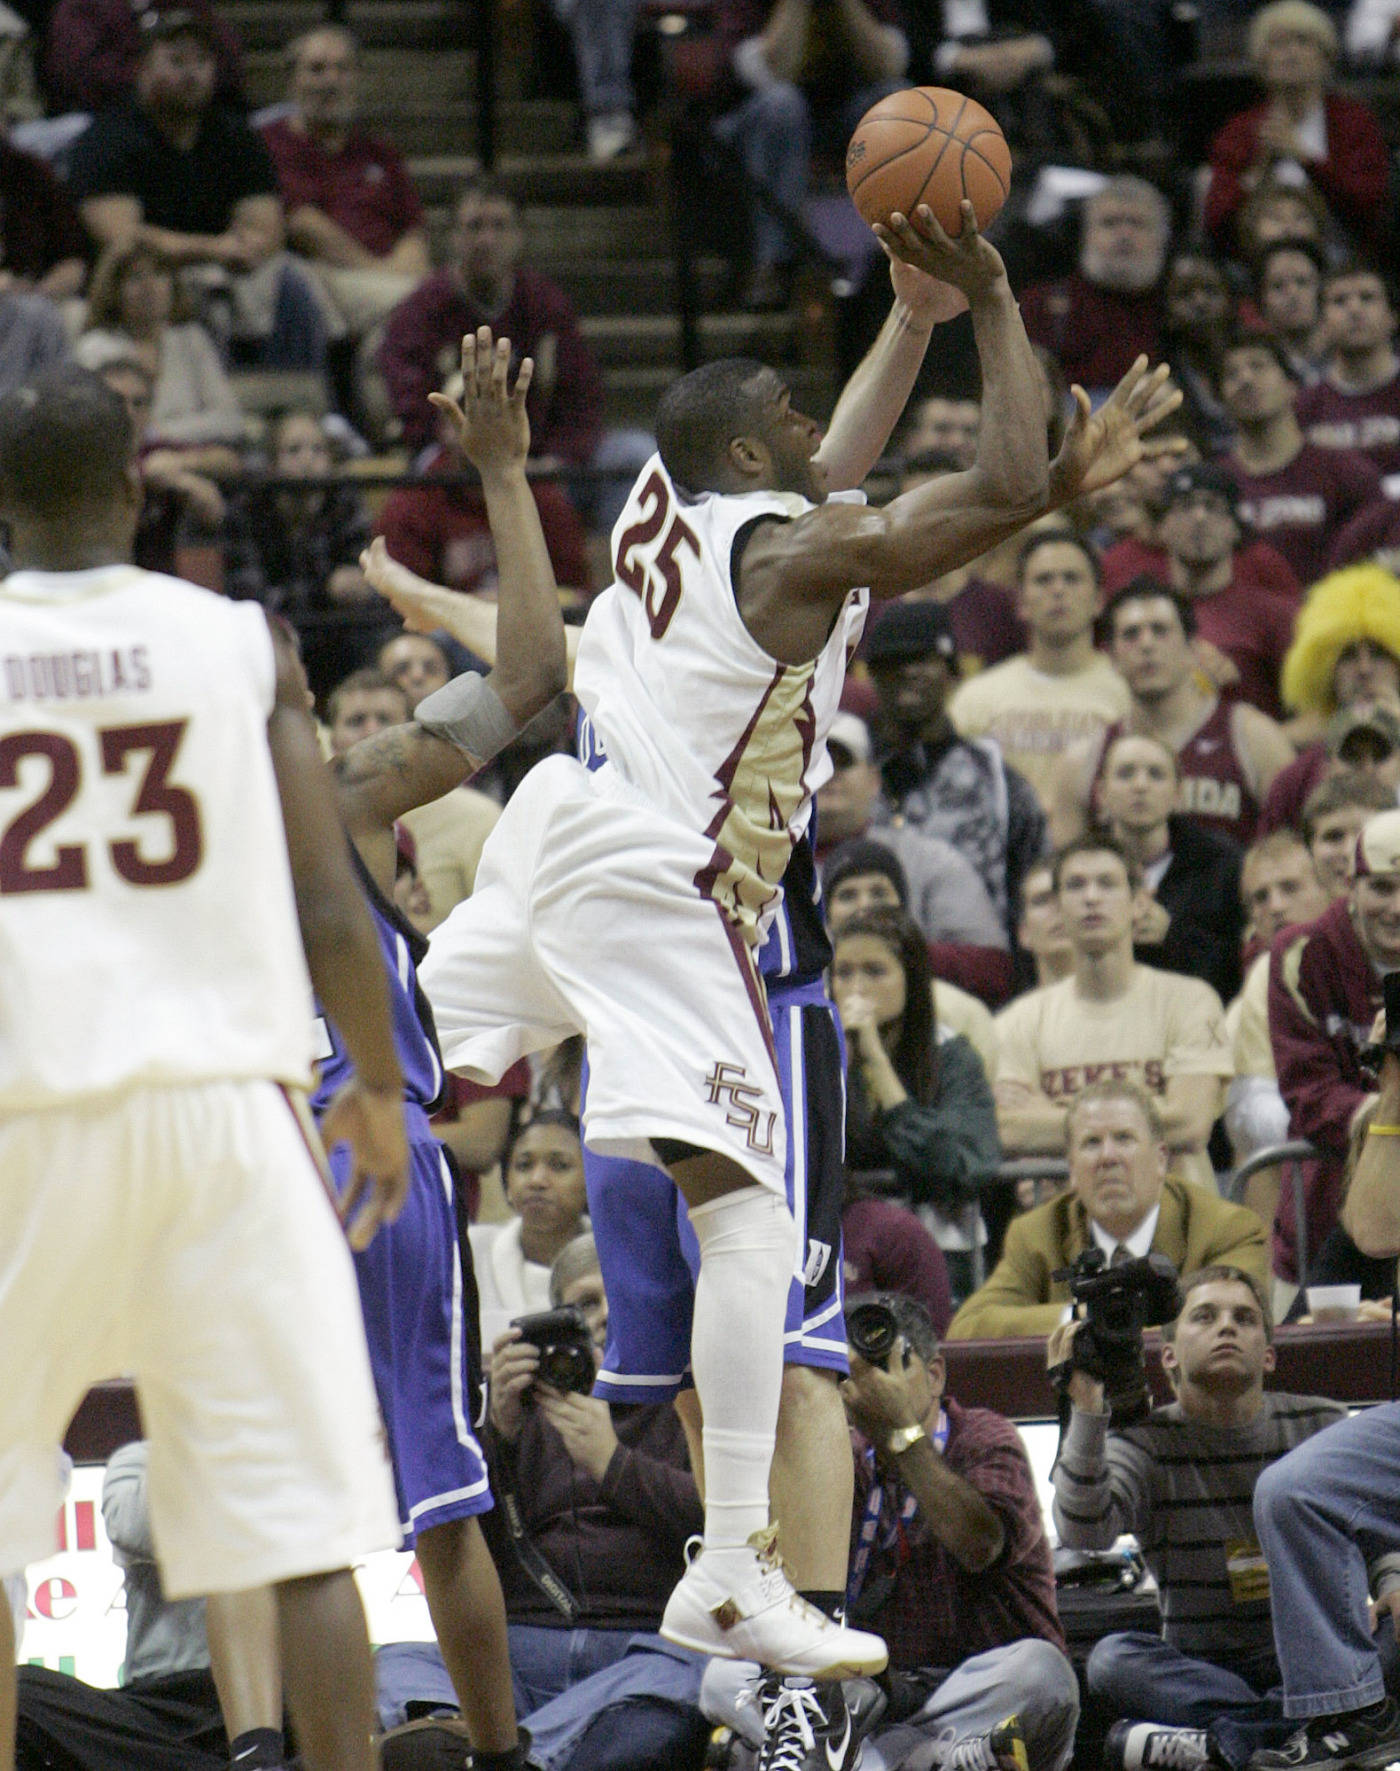 Florida State's Jason Rich shoots and scores two of his 18 points against Duke in a college basketball game on Wednesday, Jan. 16, 2008 in Tallahassee, Fla. Duke won 70-57.(